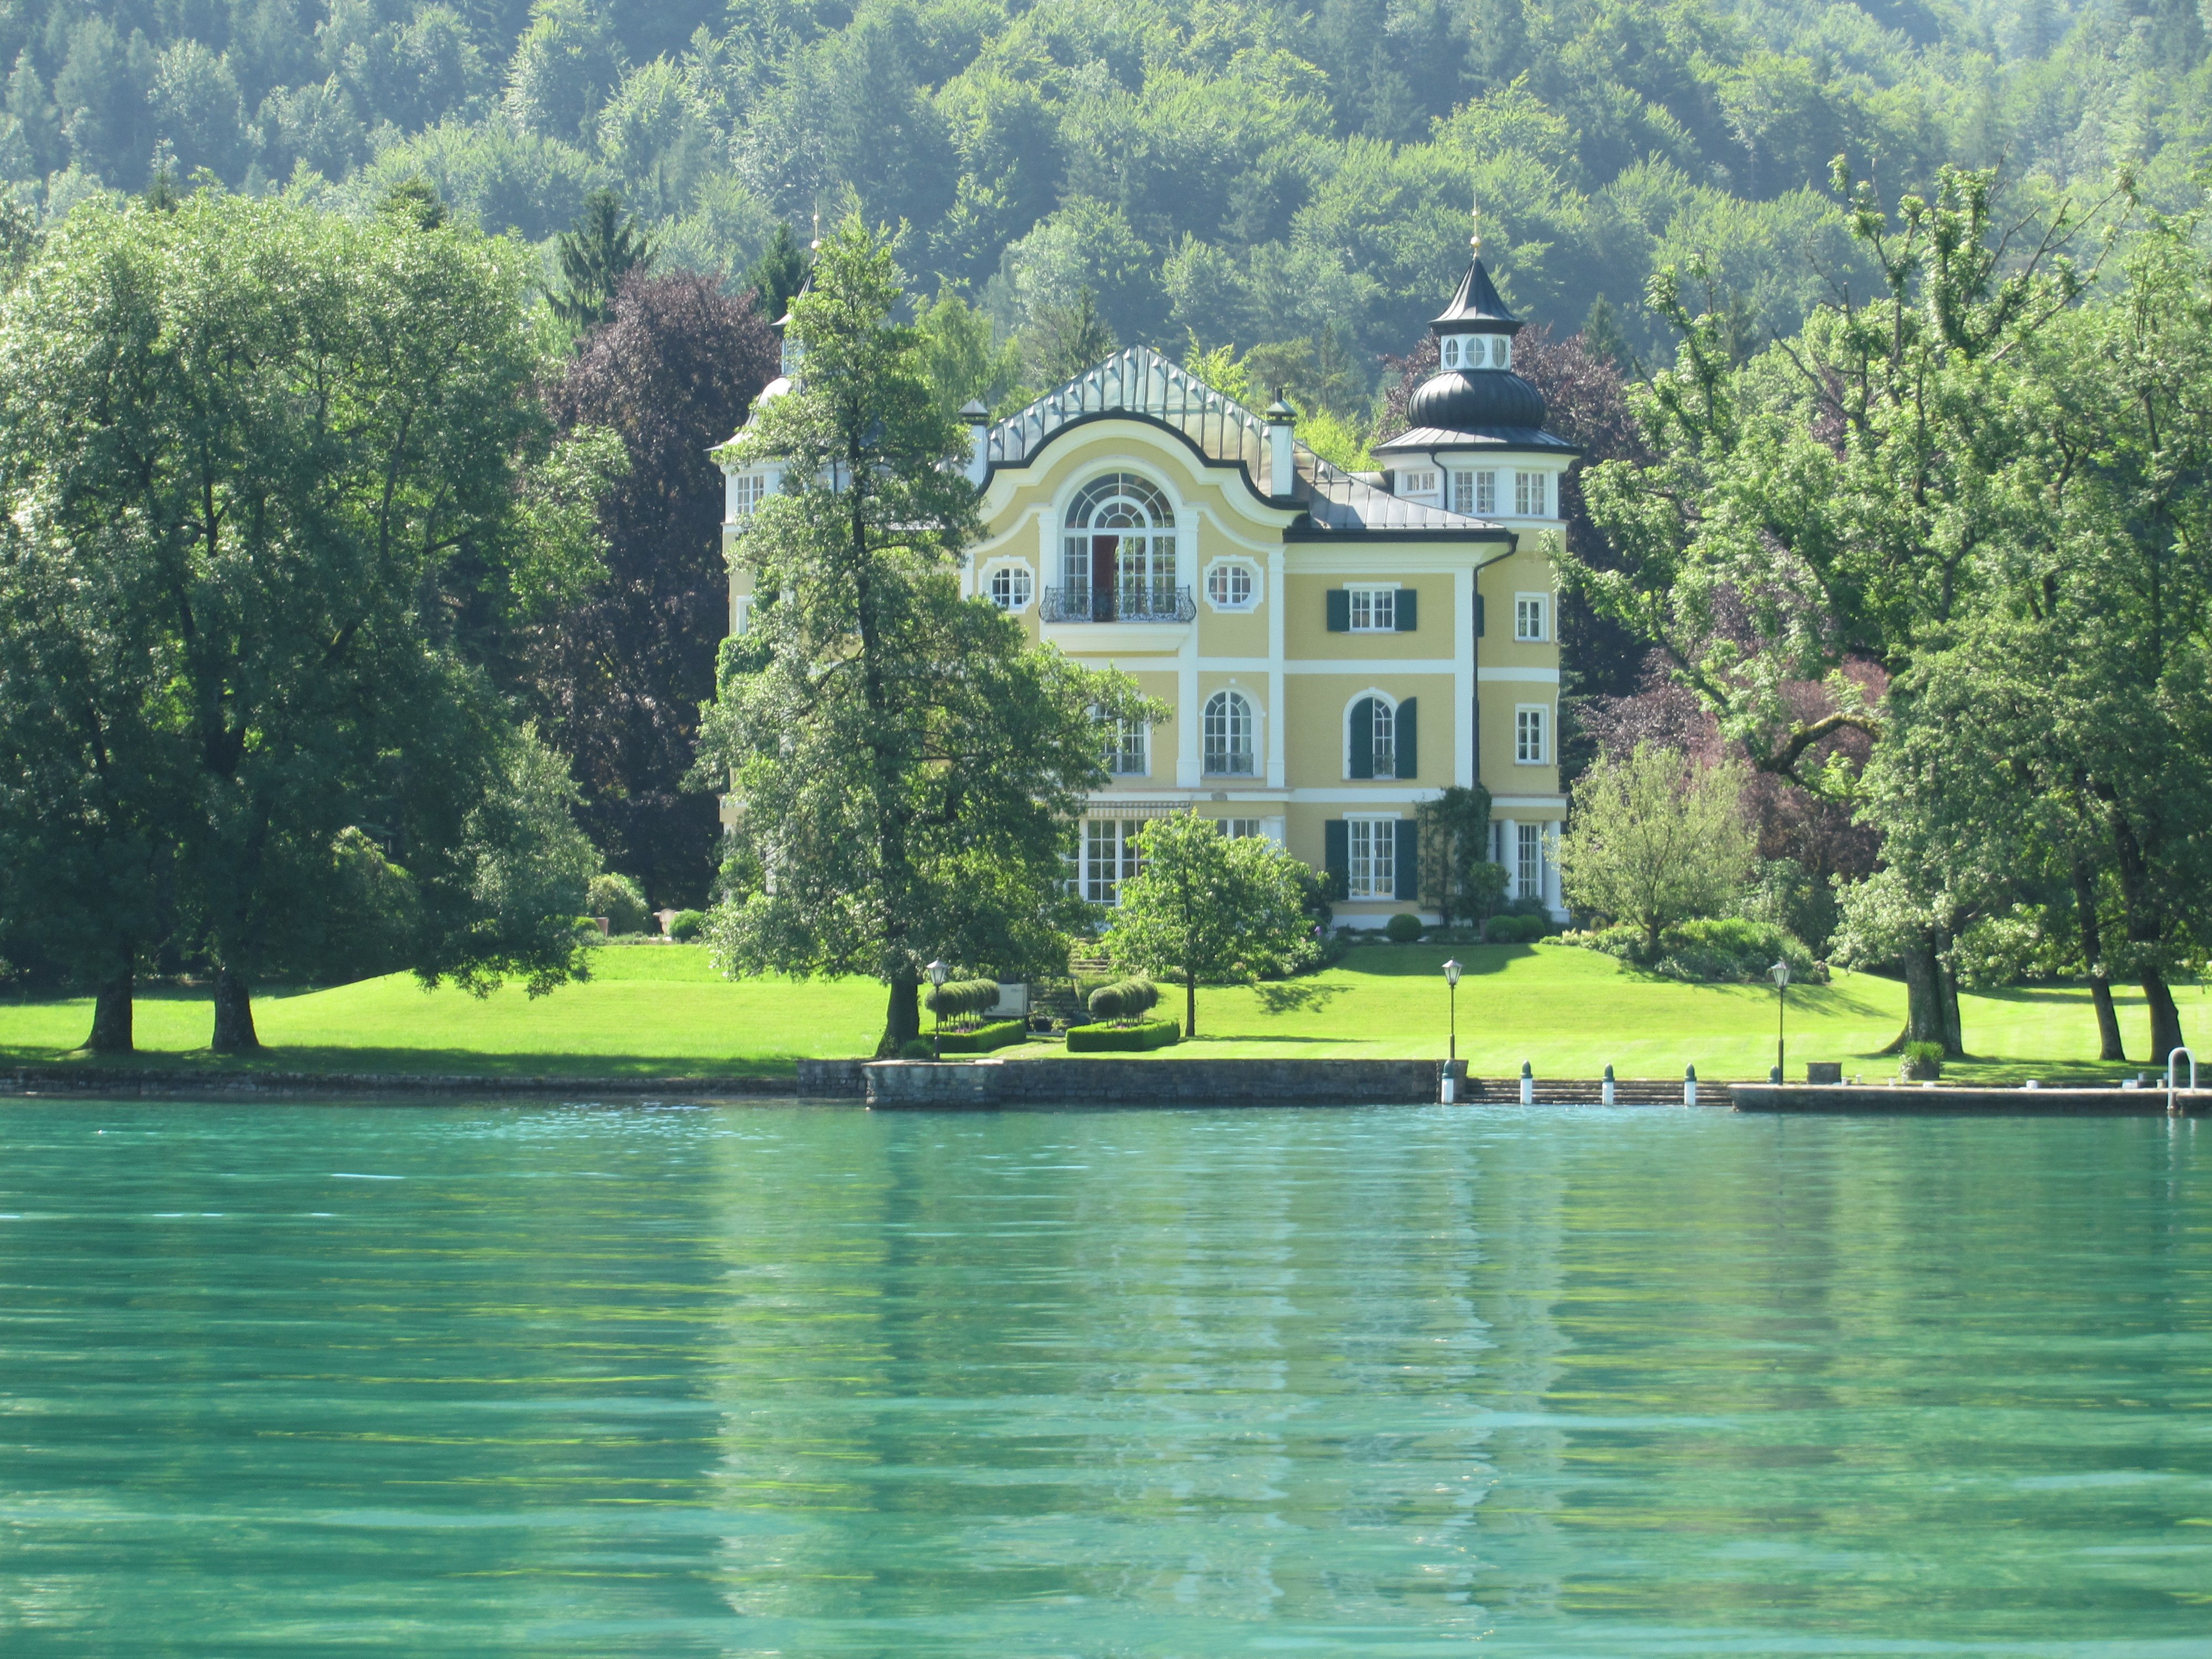 Lakeside landscapes and villages upper austria s for Lakeside home